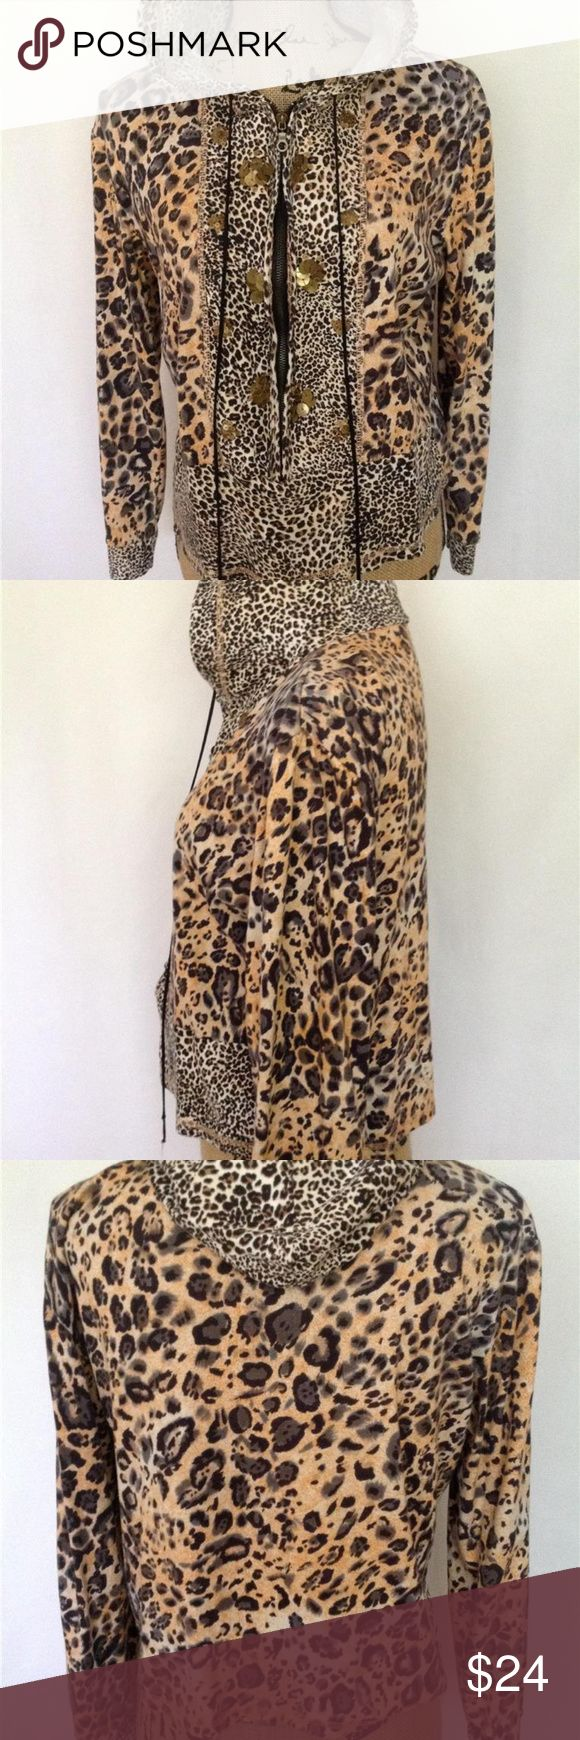 """Women's Jacket LOLA P Hooded Animal Print Jacket M Sexy leopard pattern, zips up the front with a hood, embellished with gold metal circles. Black, cream, taupe and orange.  Click images to enlarge   Measurements for this jacket are:  Length: 20 1/2""""  Width under the arms around: 44""""  Sleeve: 21""""  Hand wash and line dry Lola P Jackets & Coats"""